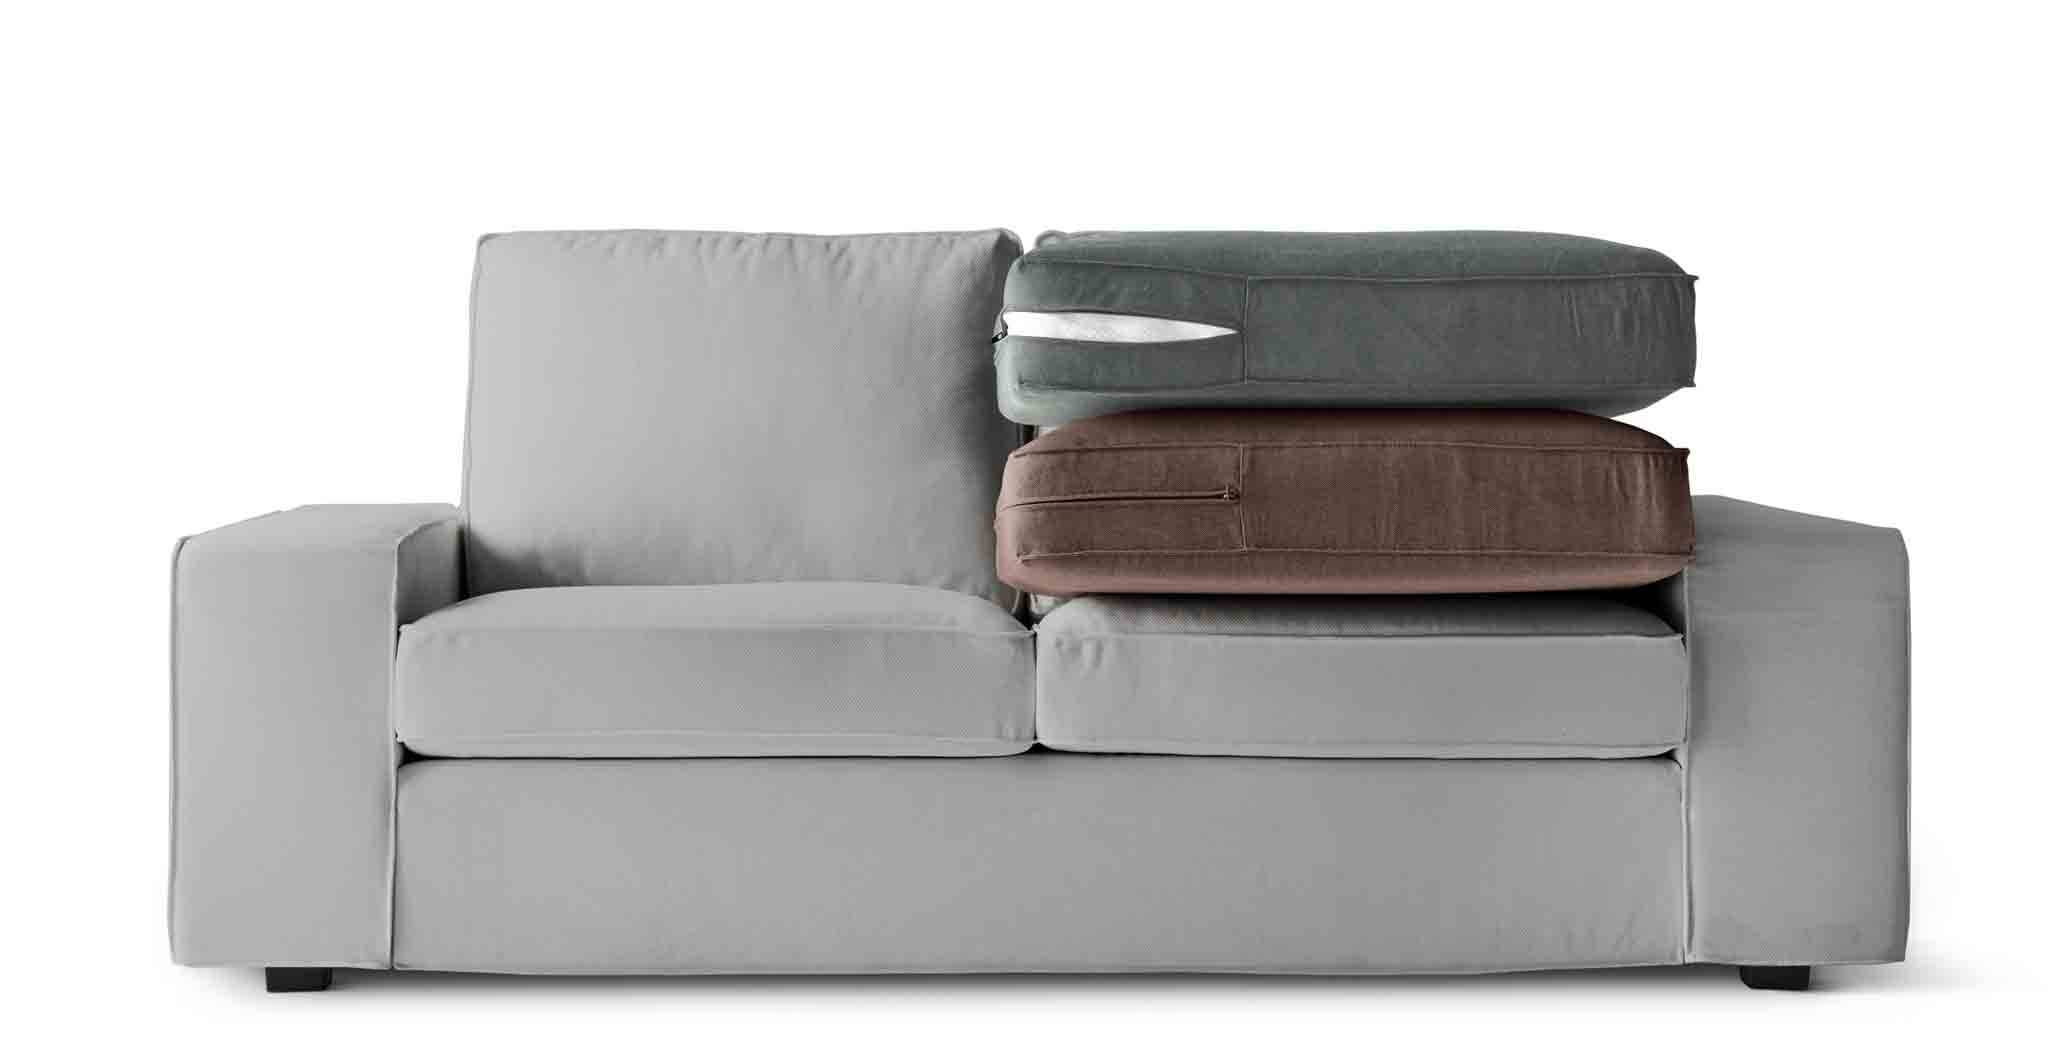 Sofa Covers | Ikea in Sofa With Removable Cover (Image 23 of 30)